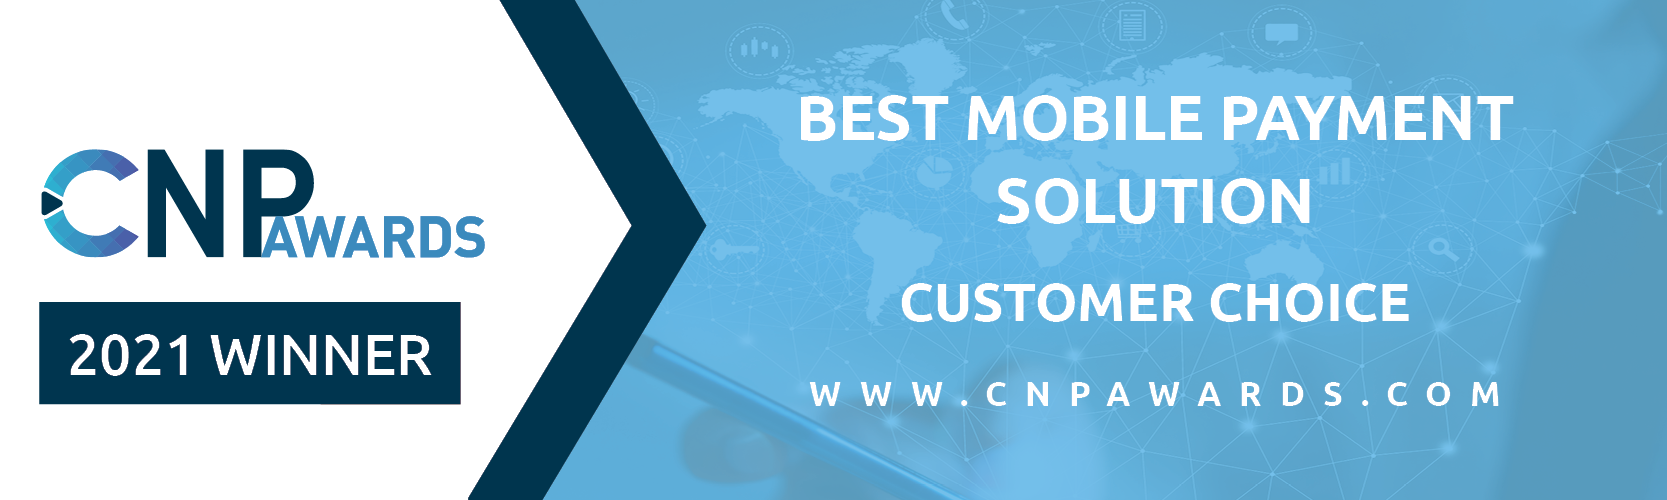 CNPAwards_Email Banner Best Mobile Payment Solution CC